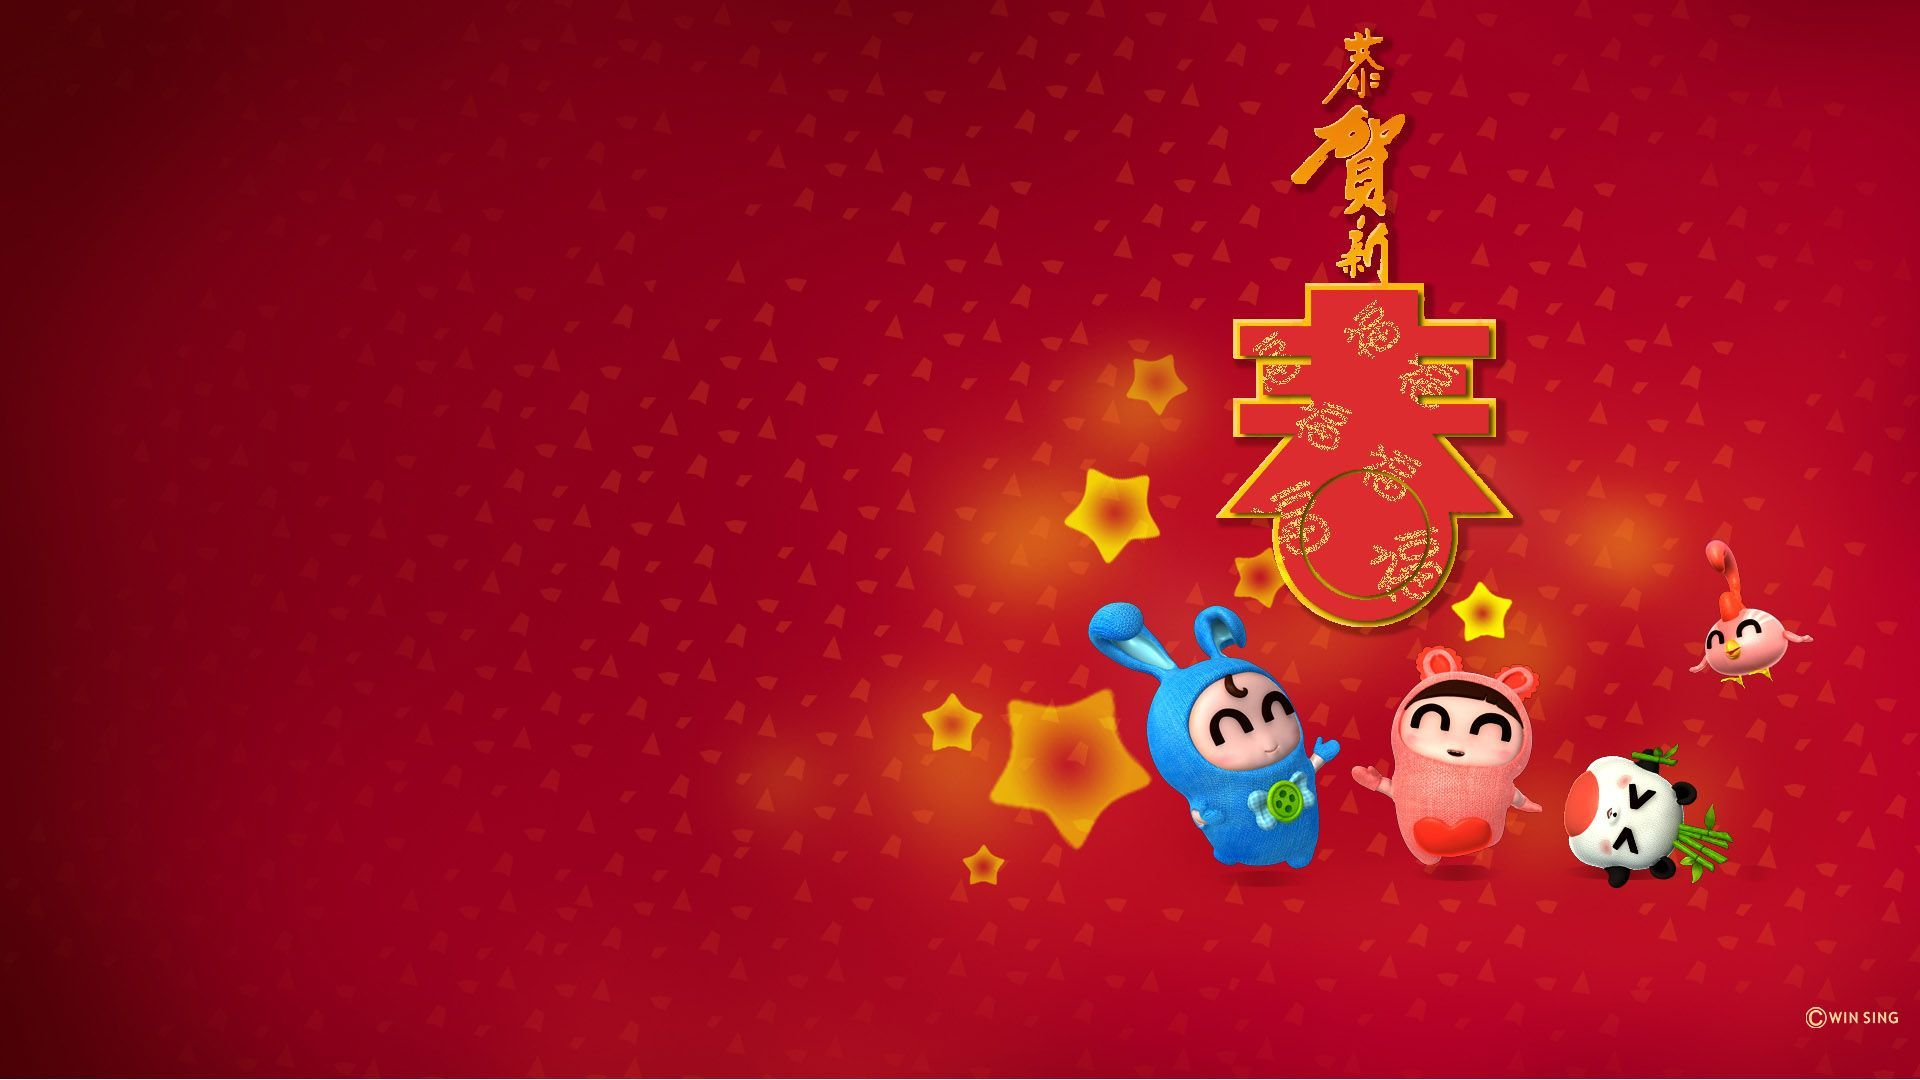 Chinese New Year Wallpaper Hd Pixelstalk Net